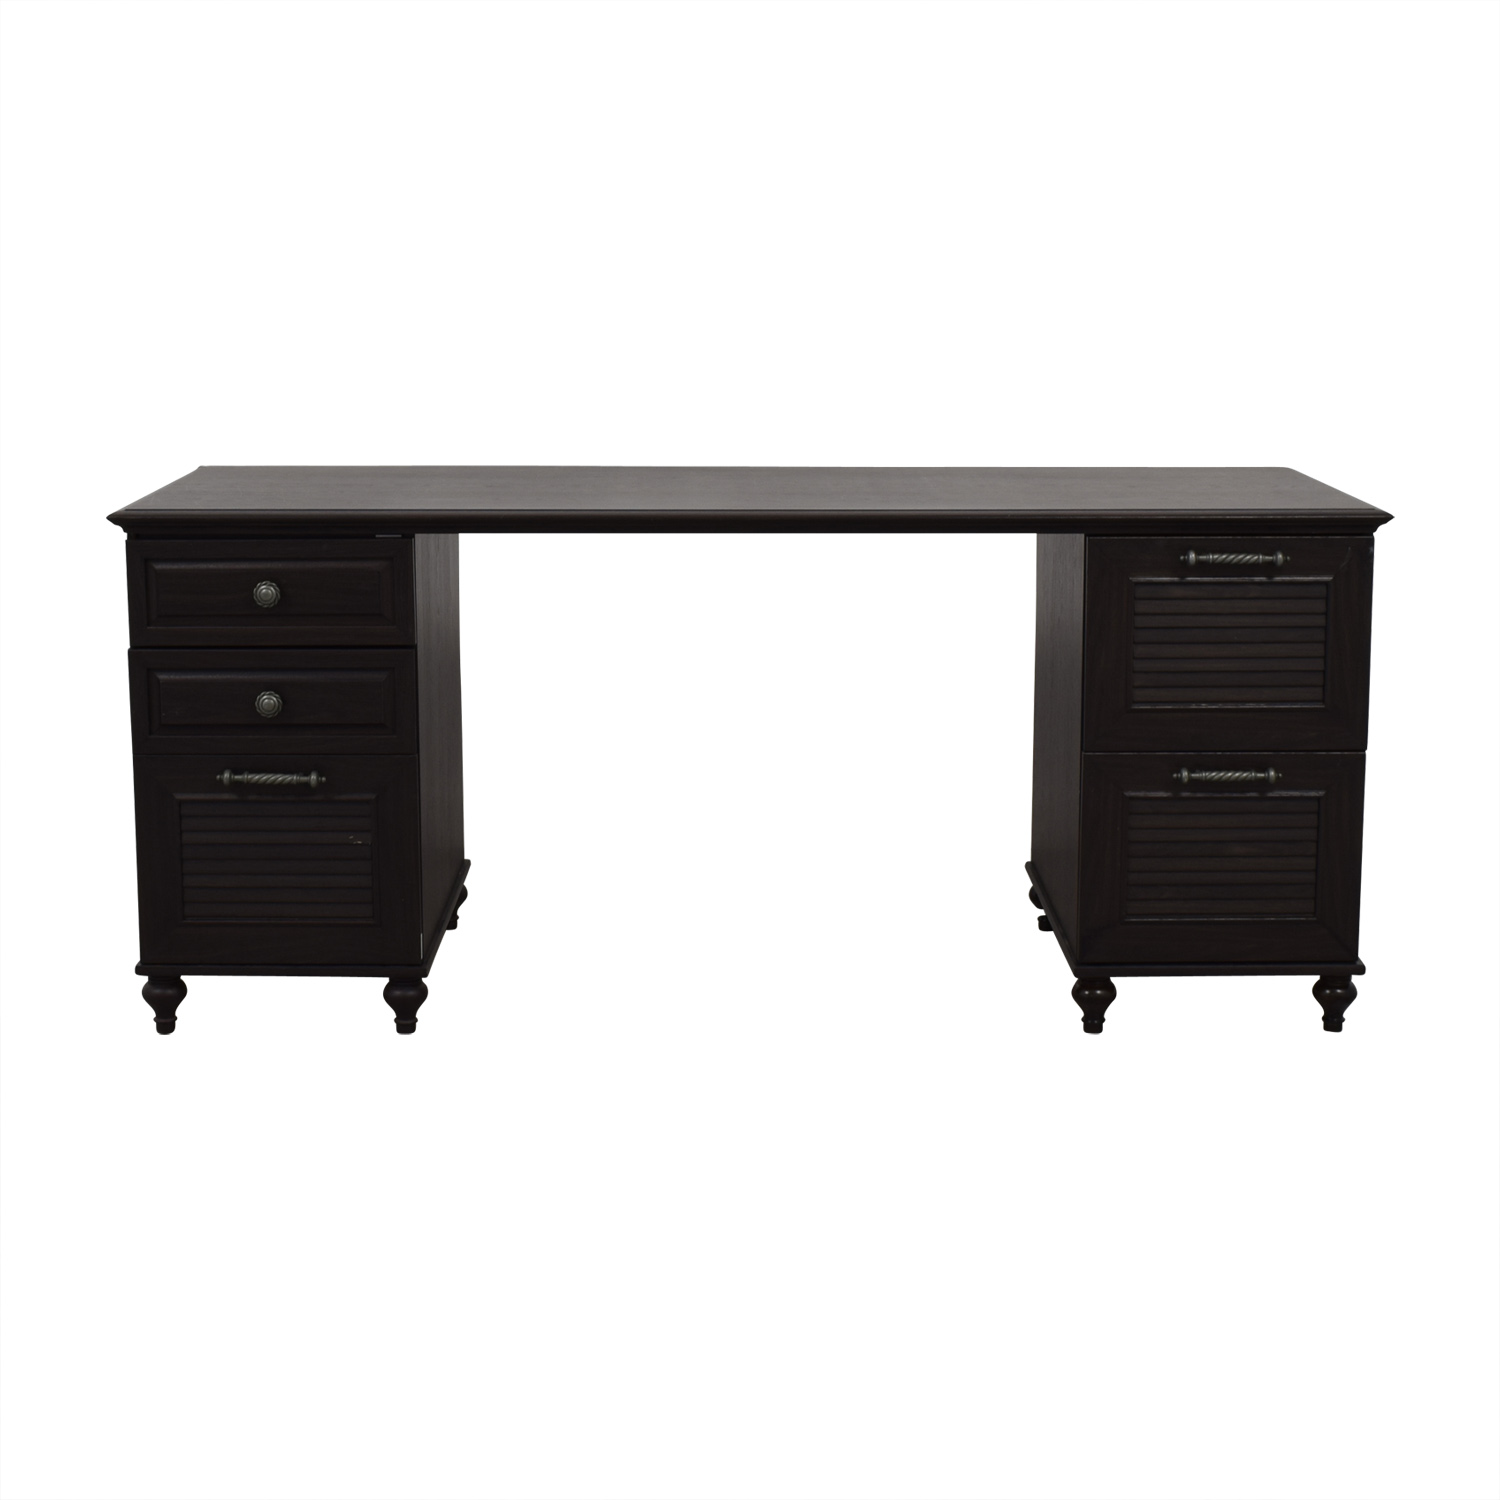 Cathy Ireland Cathy Ireland Black Desk with File Cabinets on sale